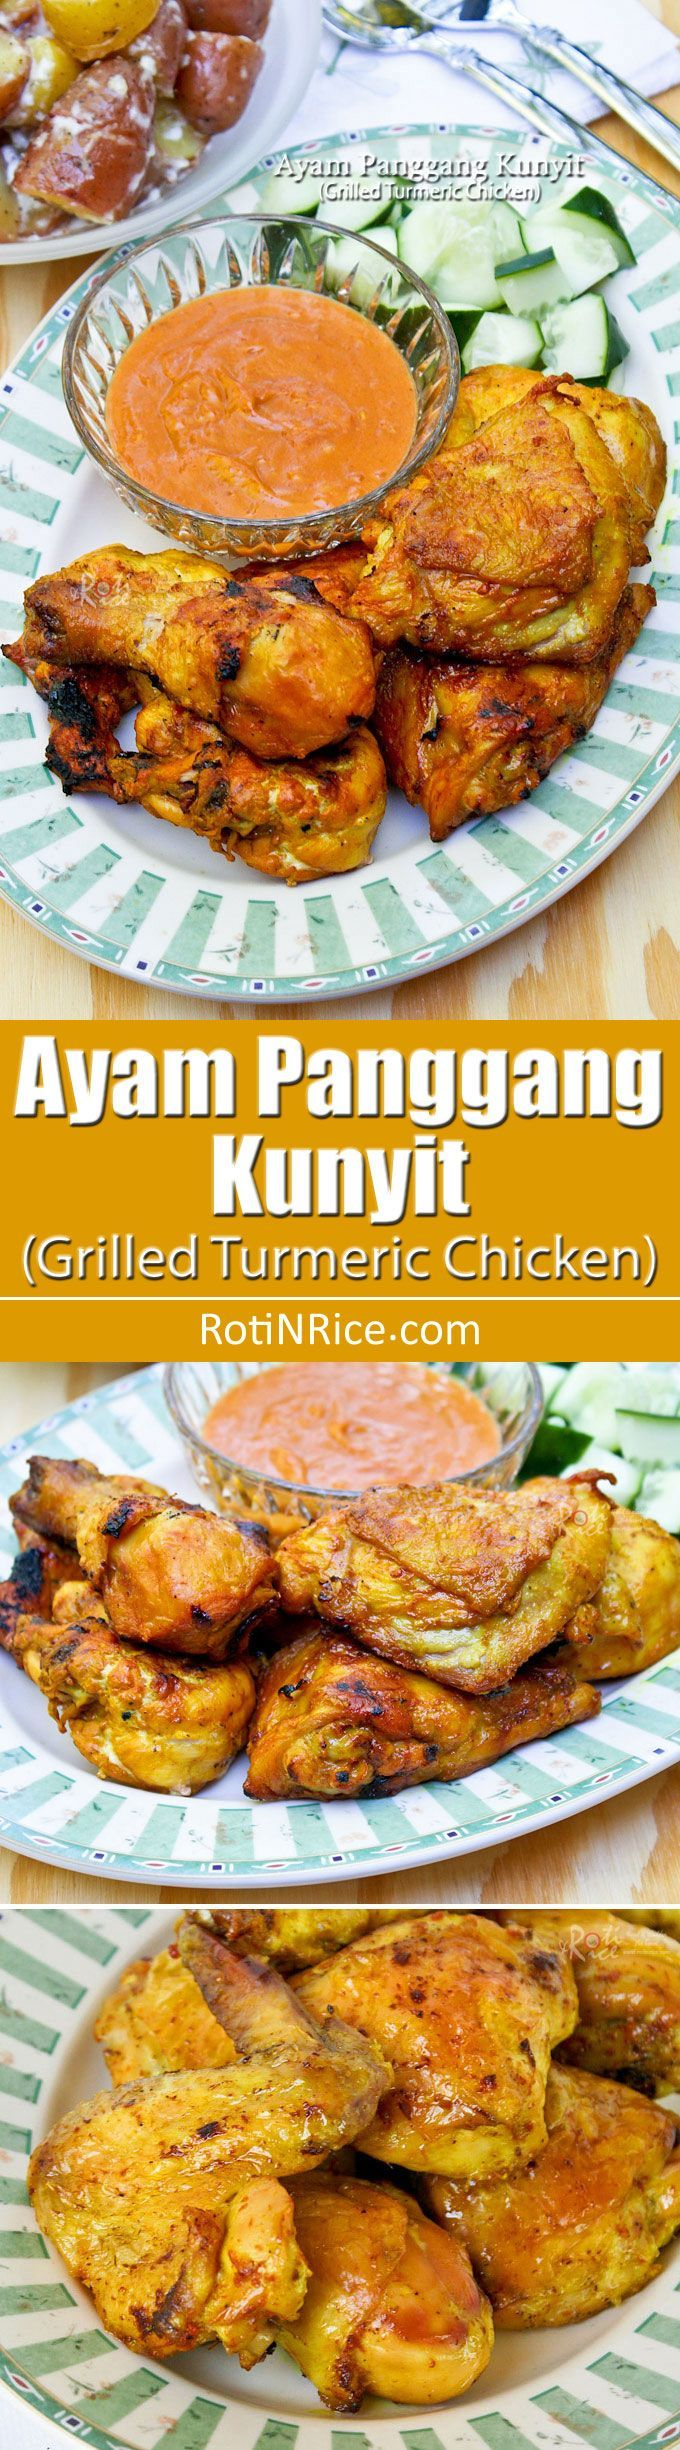 Simple yet tasty and aromatic Ayam Panggang Kunyit (Grilled Turmeric Chicken) using ground or fresh turmeric. Only 5 ingredients required. | http://RotiNRice.com